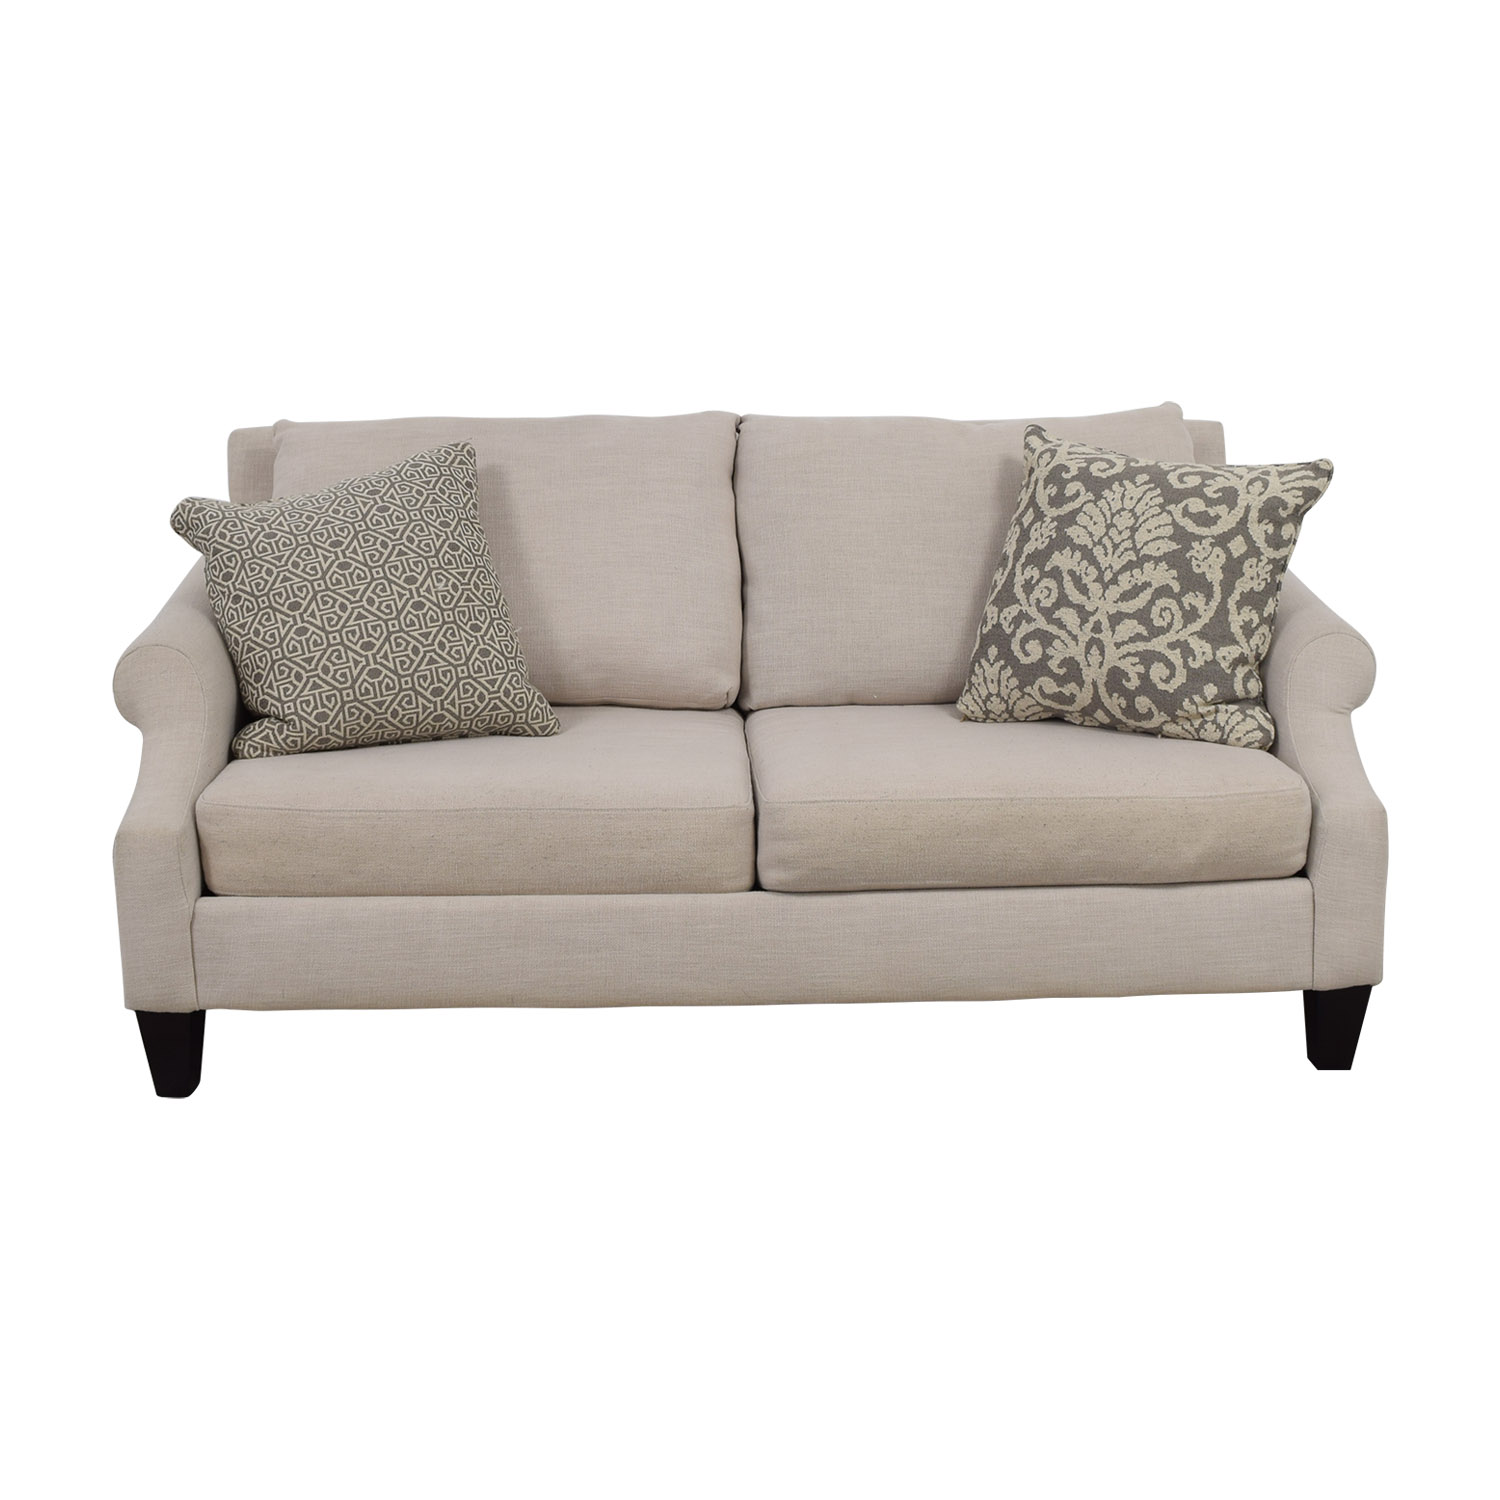 shop Rooms To Go Beige Two-Cushion Loveseat Rooms To Go Loveseats